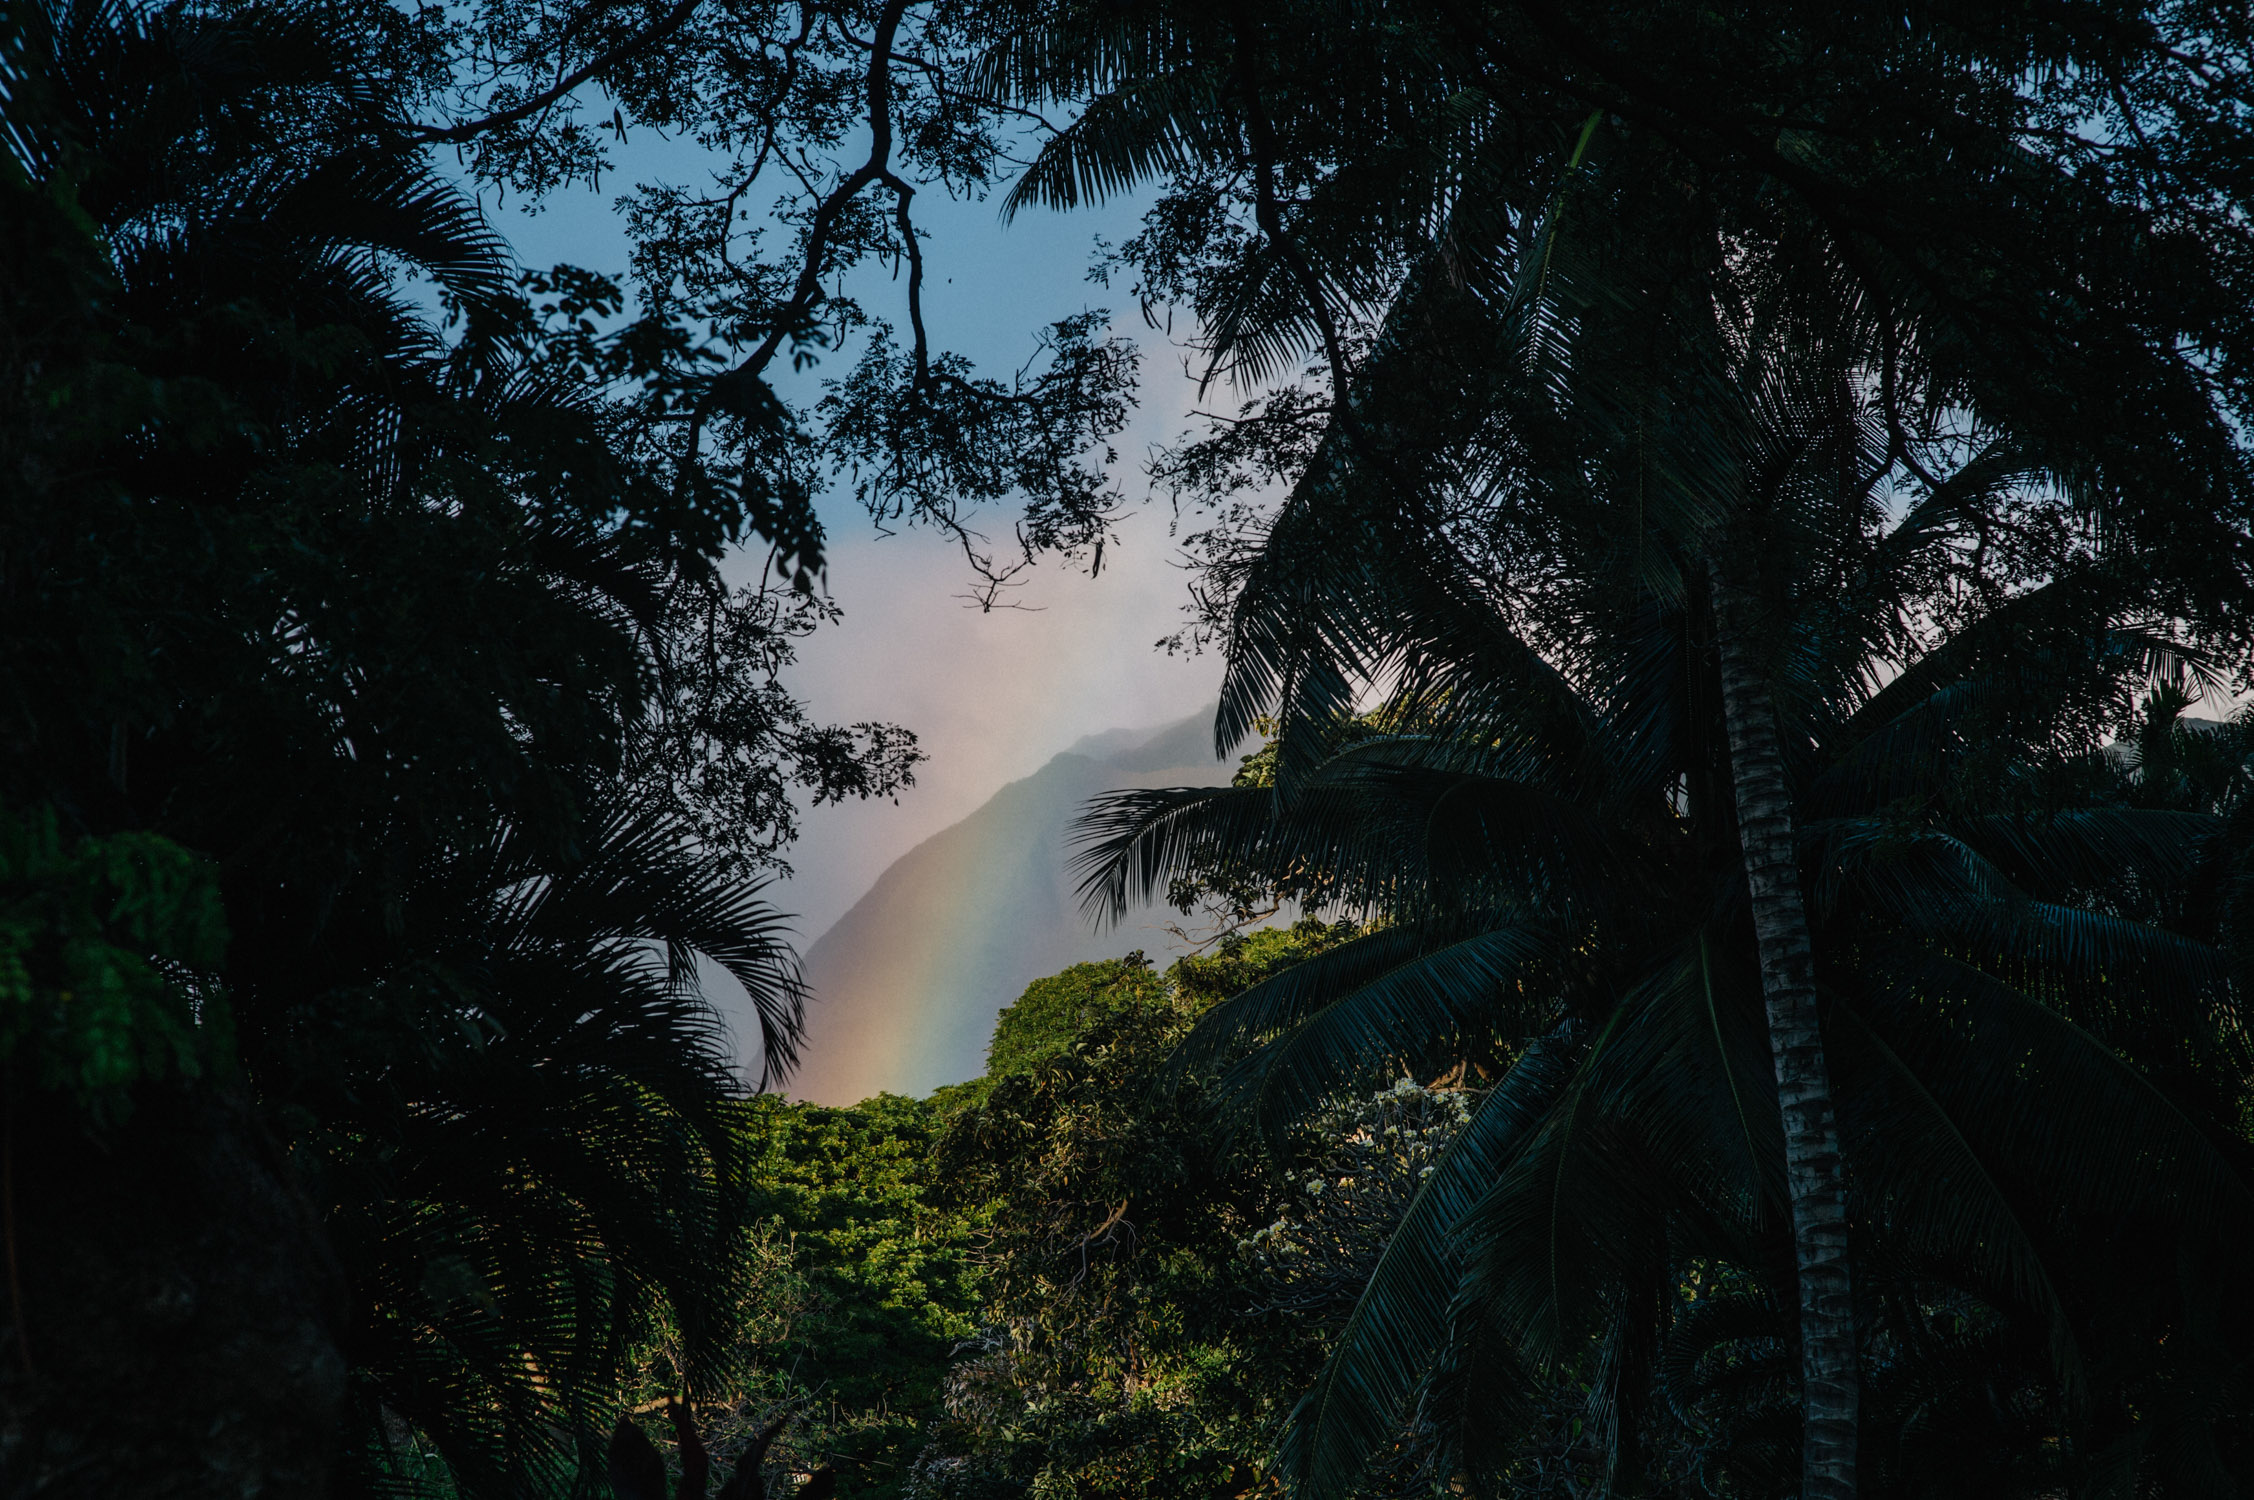 Rainbow over Olowalu Plantation House in Maui